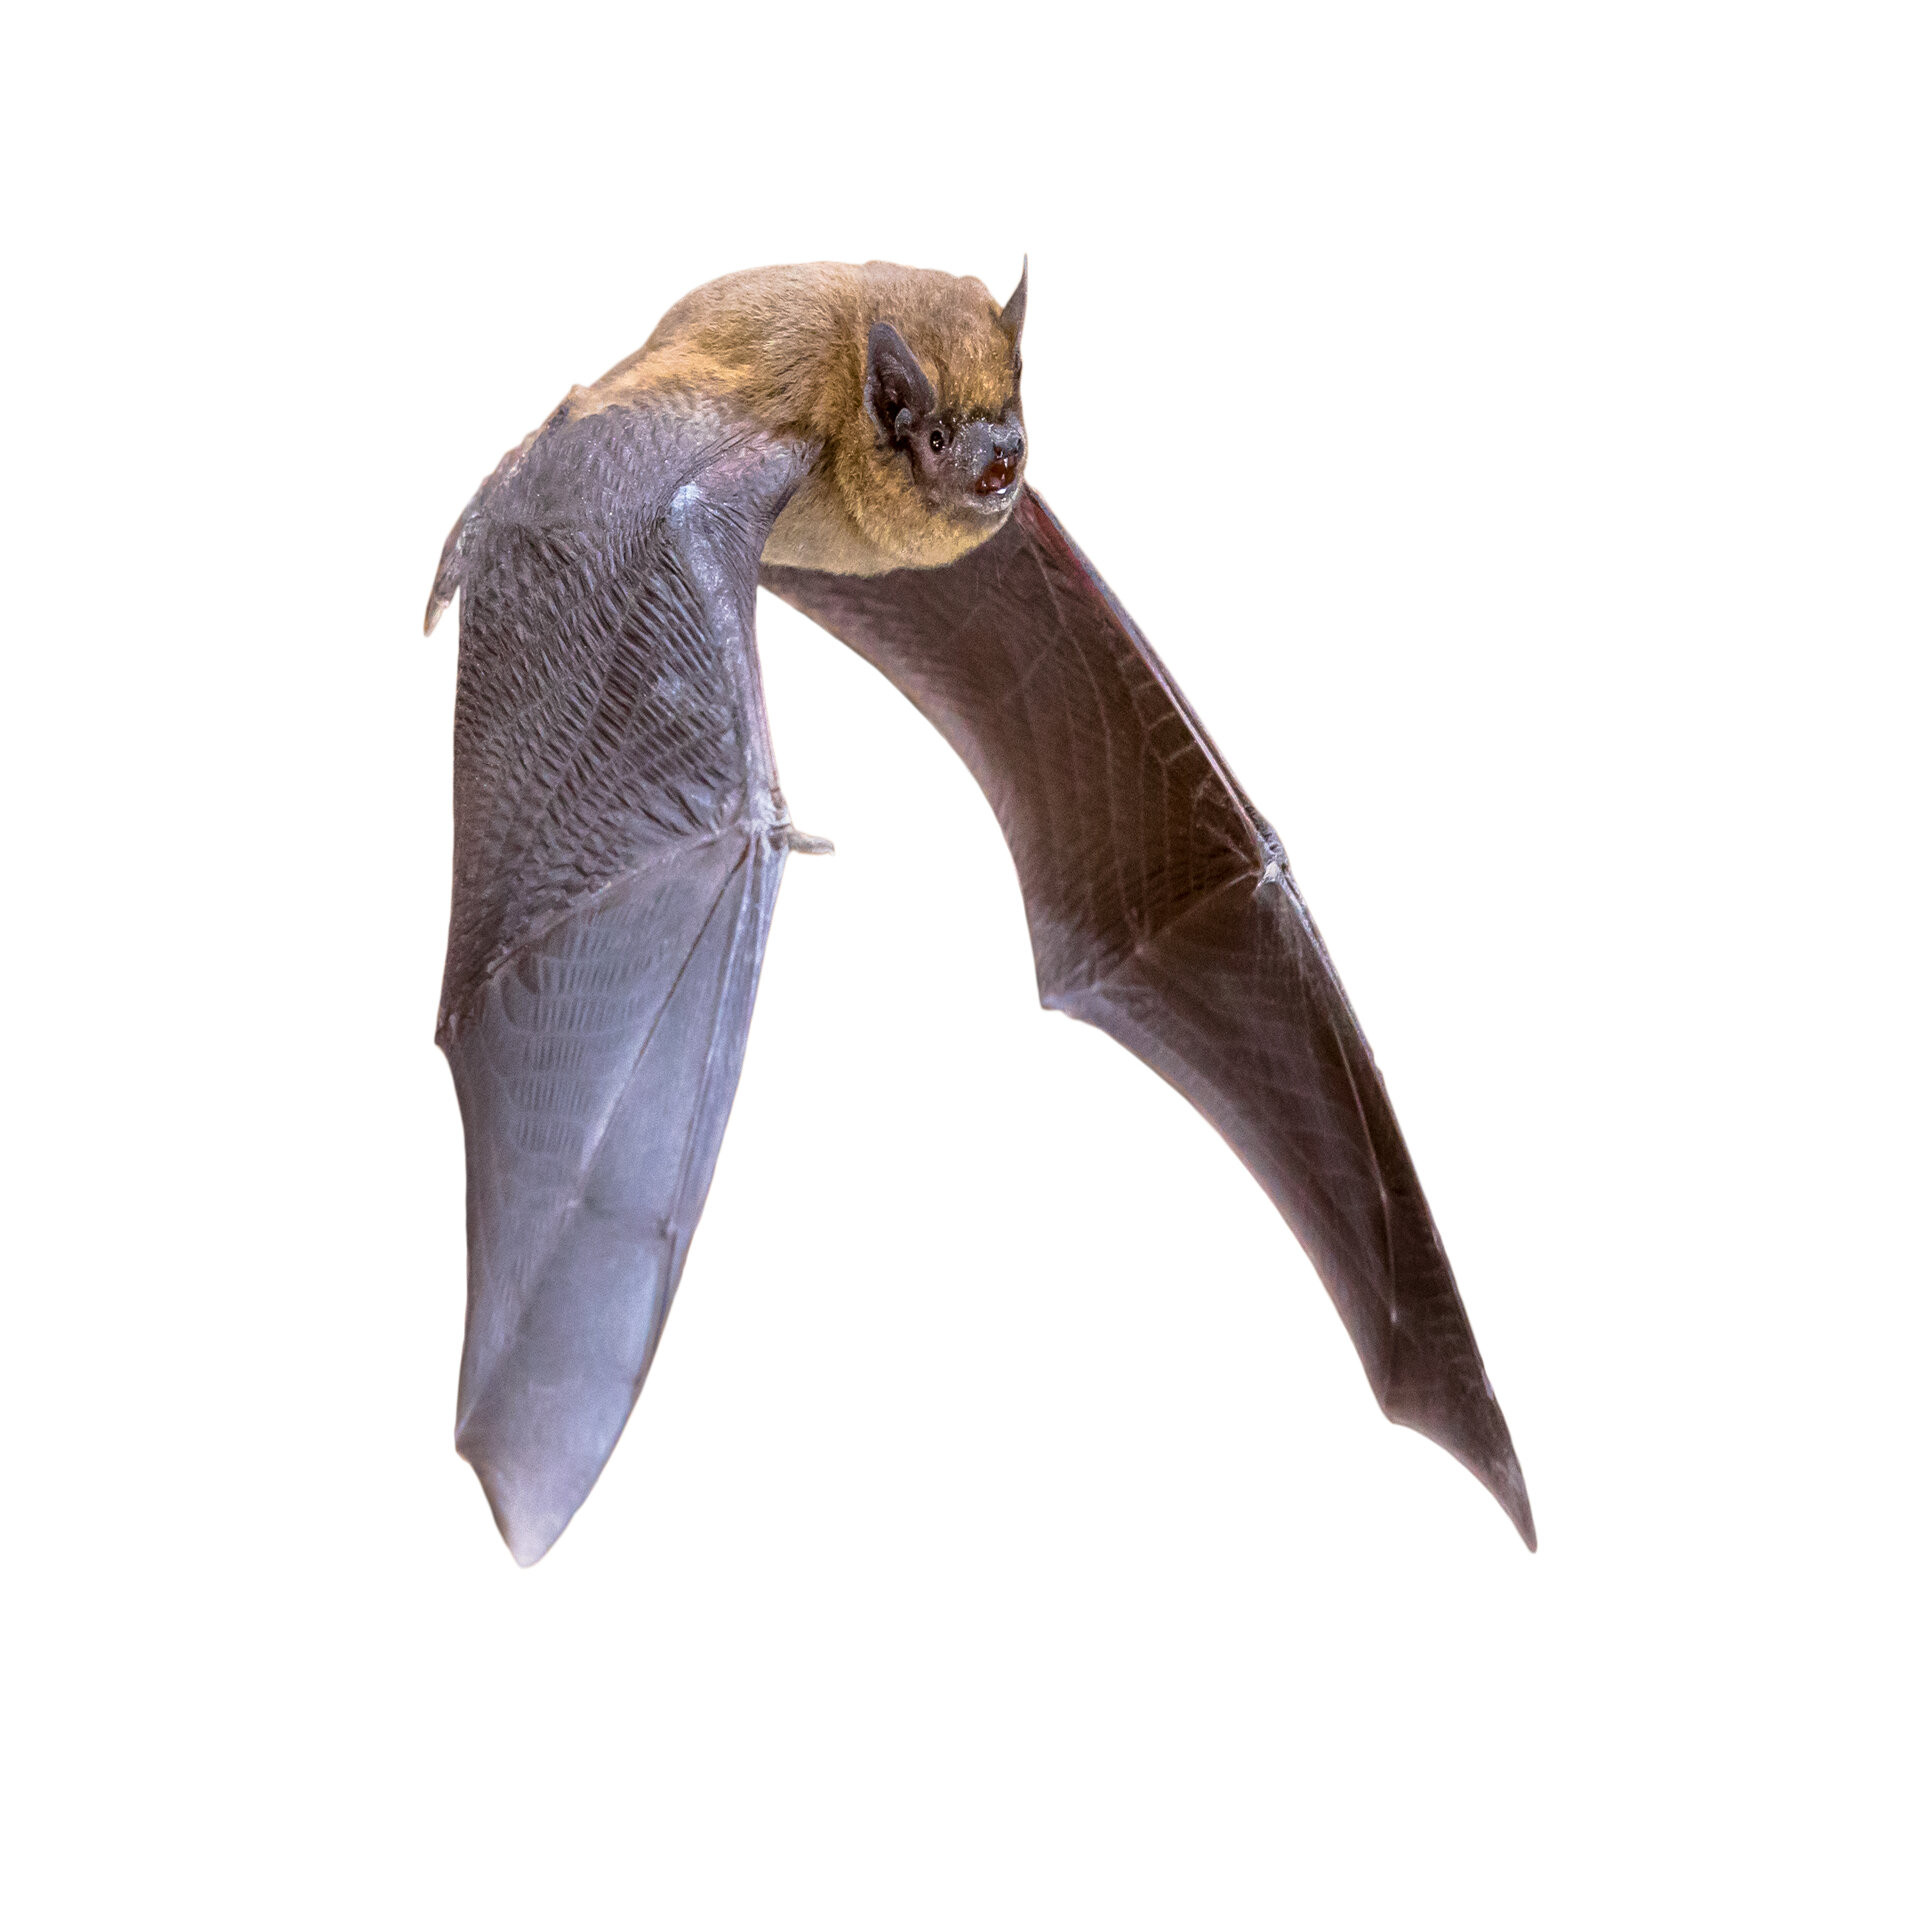 Bat white background